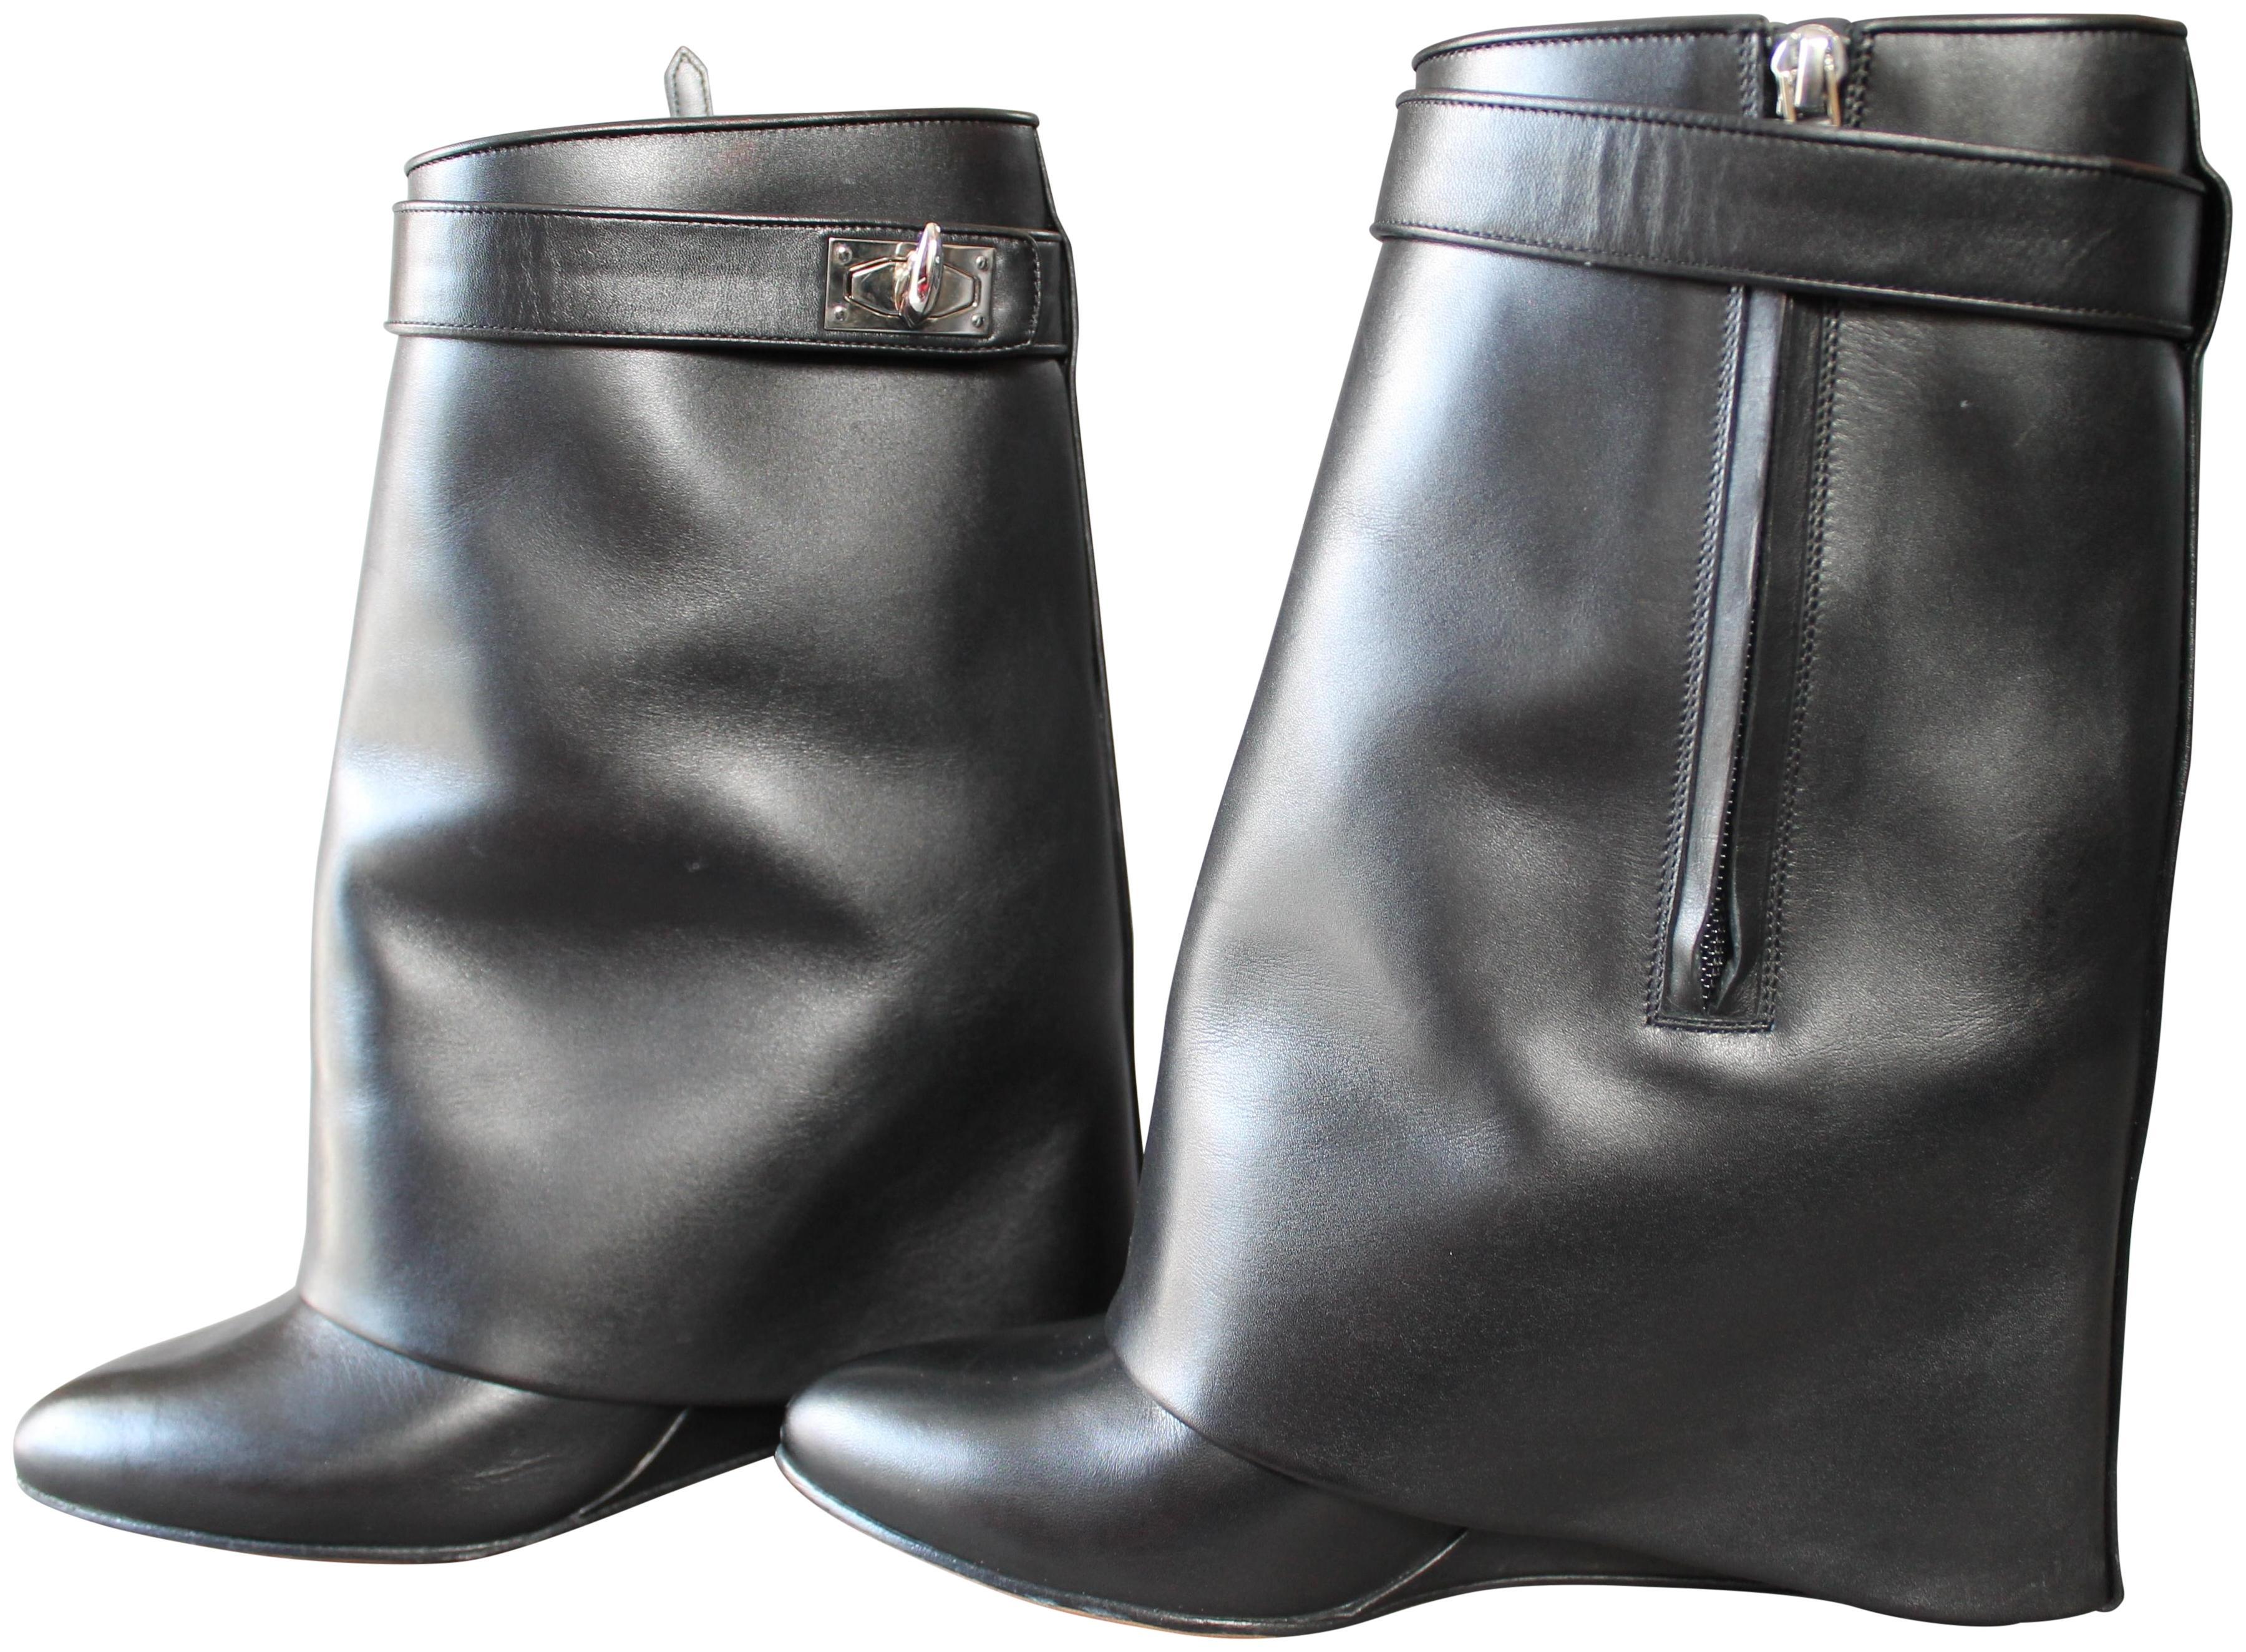 Givenchy Black Leather Shark Tooth Lock Foldover Wedge Heel Boots/Booties Size EU 39.5 (Approx. US 9.5) Regular (M, B)